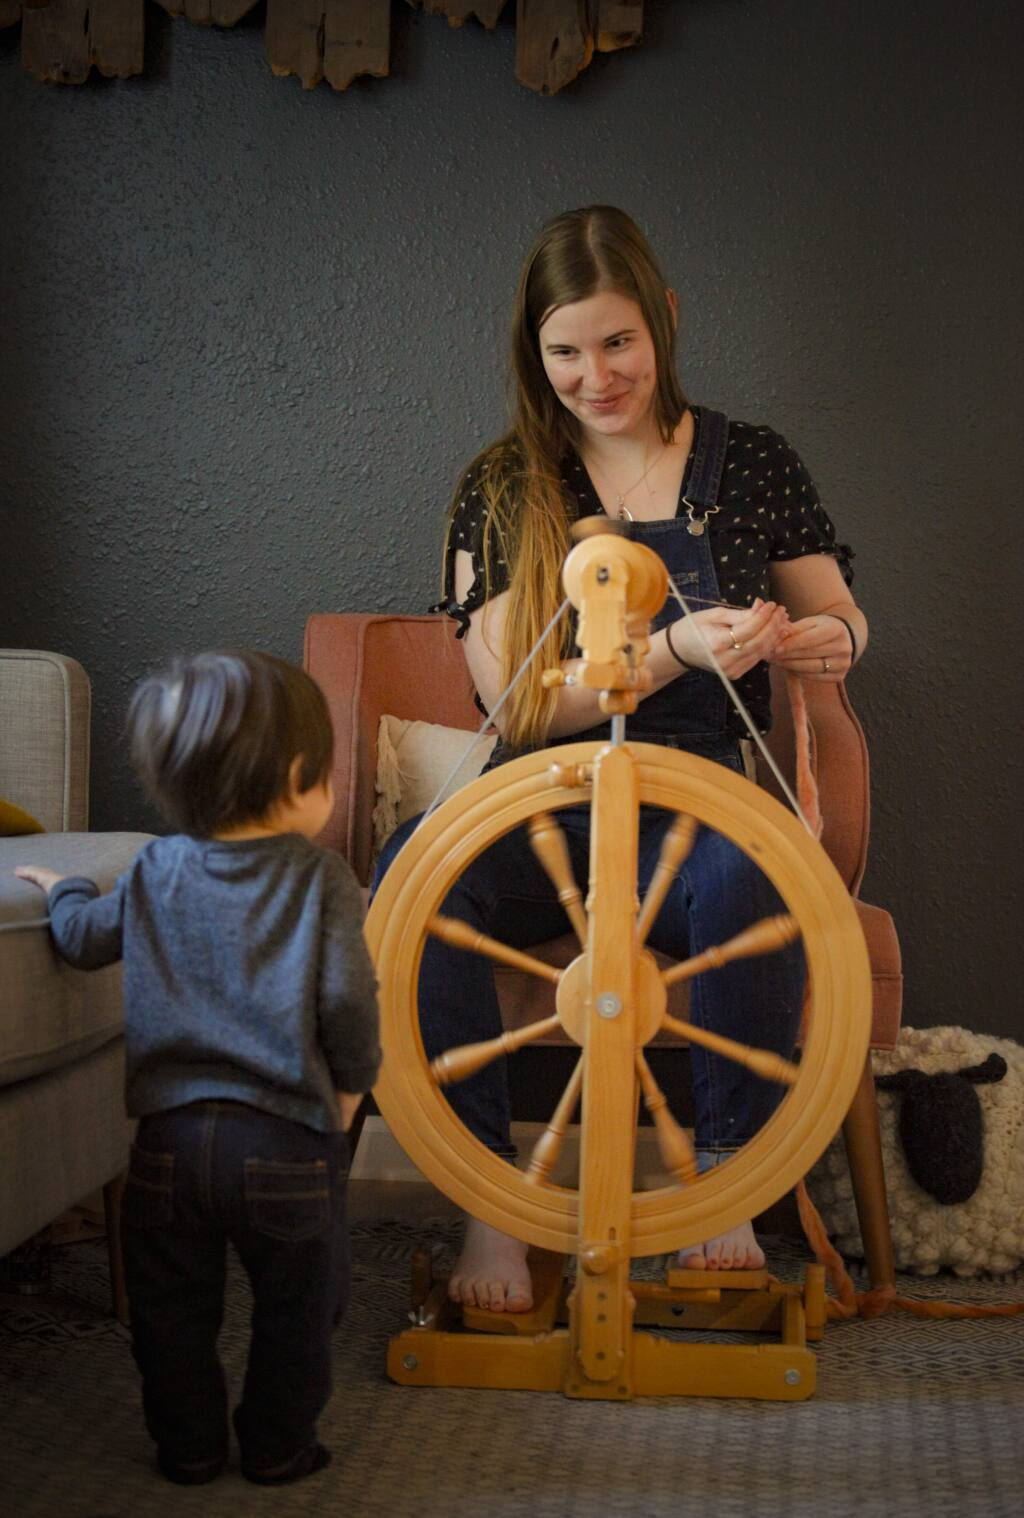 Petaluma, CA, USA. Tuesday, February 25, 2020._ Knitter Alisha Reyes opened Fiber Circle Studios in Cotati a few years ago. She teaches classes and creates indie dyed yarn in her studio where she is accompanied by her 11-month-old son, Dominic. (CRISSY PASCUAL/ARGUS-COURIER STAFF)